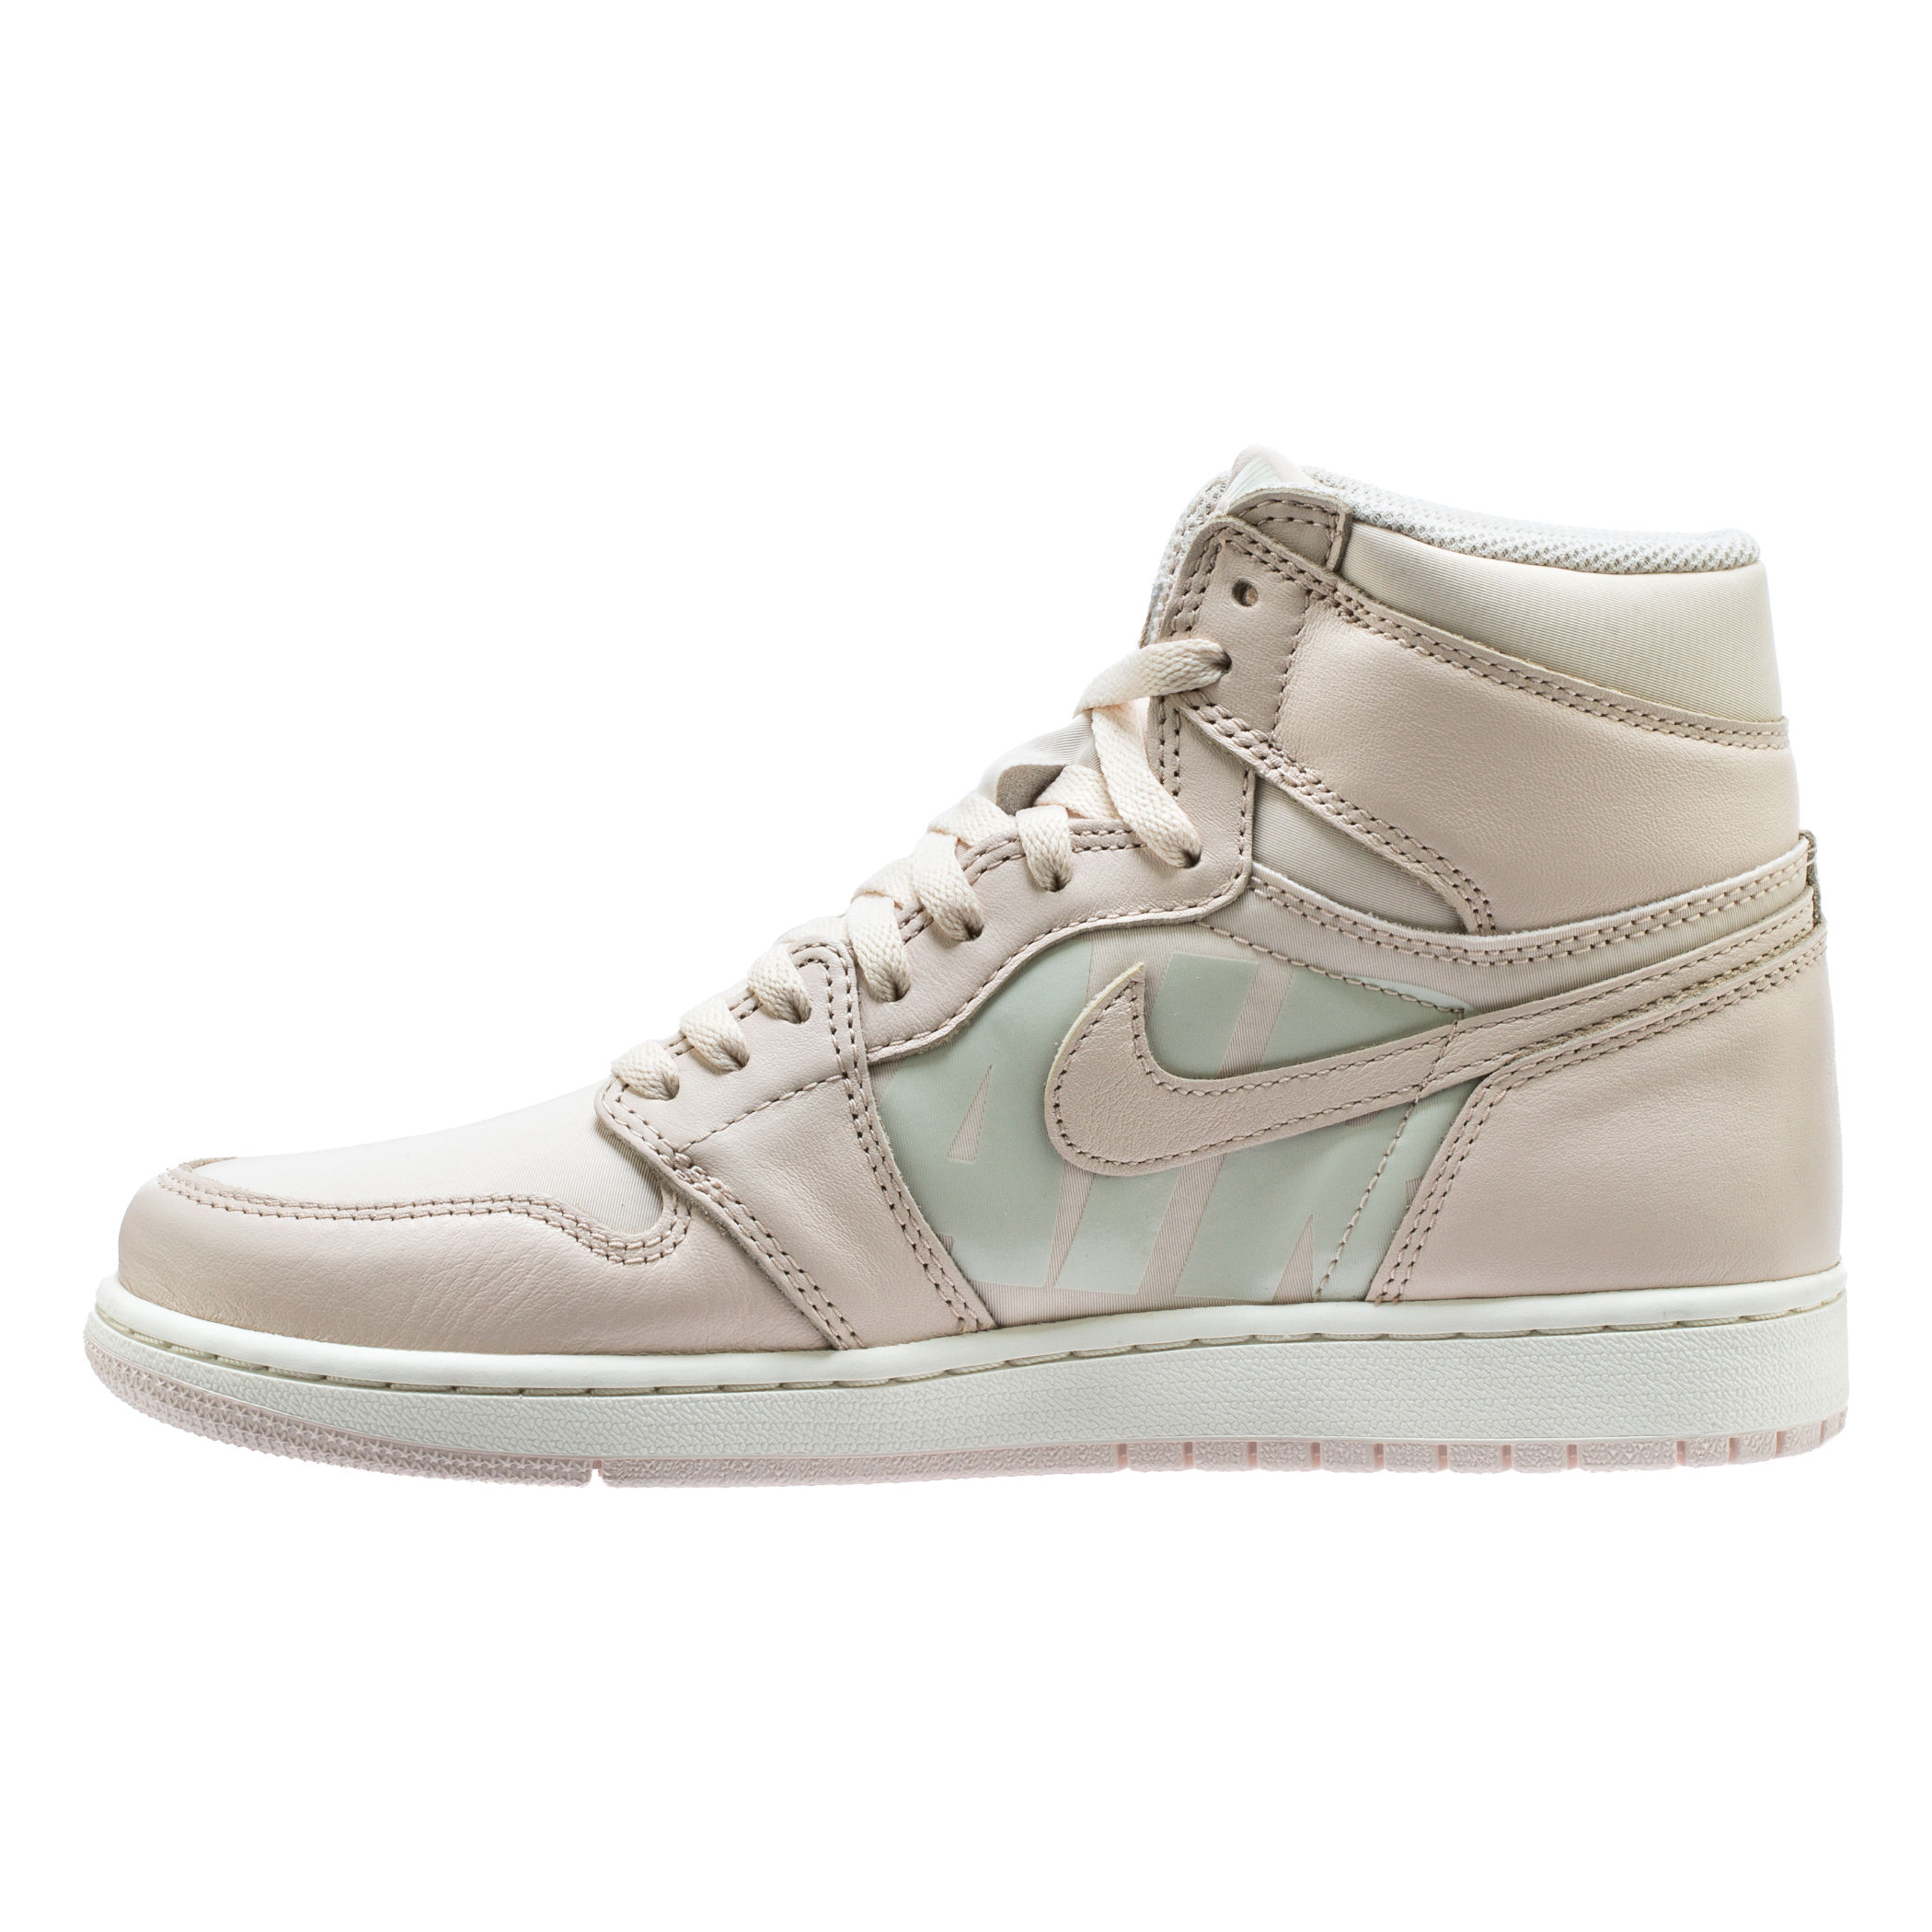 7a8362b3a5ac AIR JORDAN 1 RETRO HIGH OG GUAVA ICE SAIL 4 - WearTesters